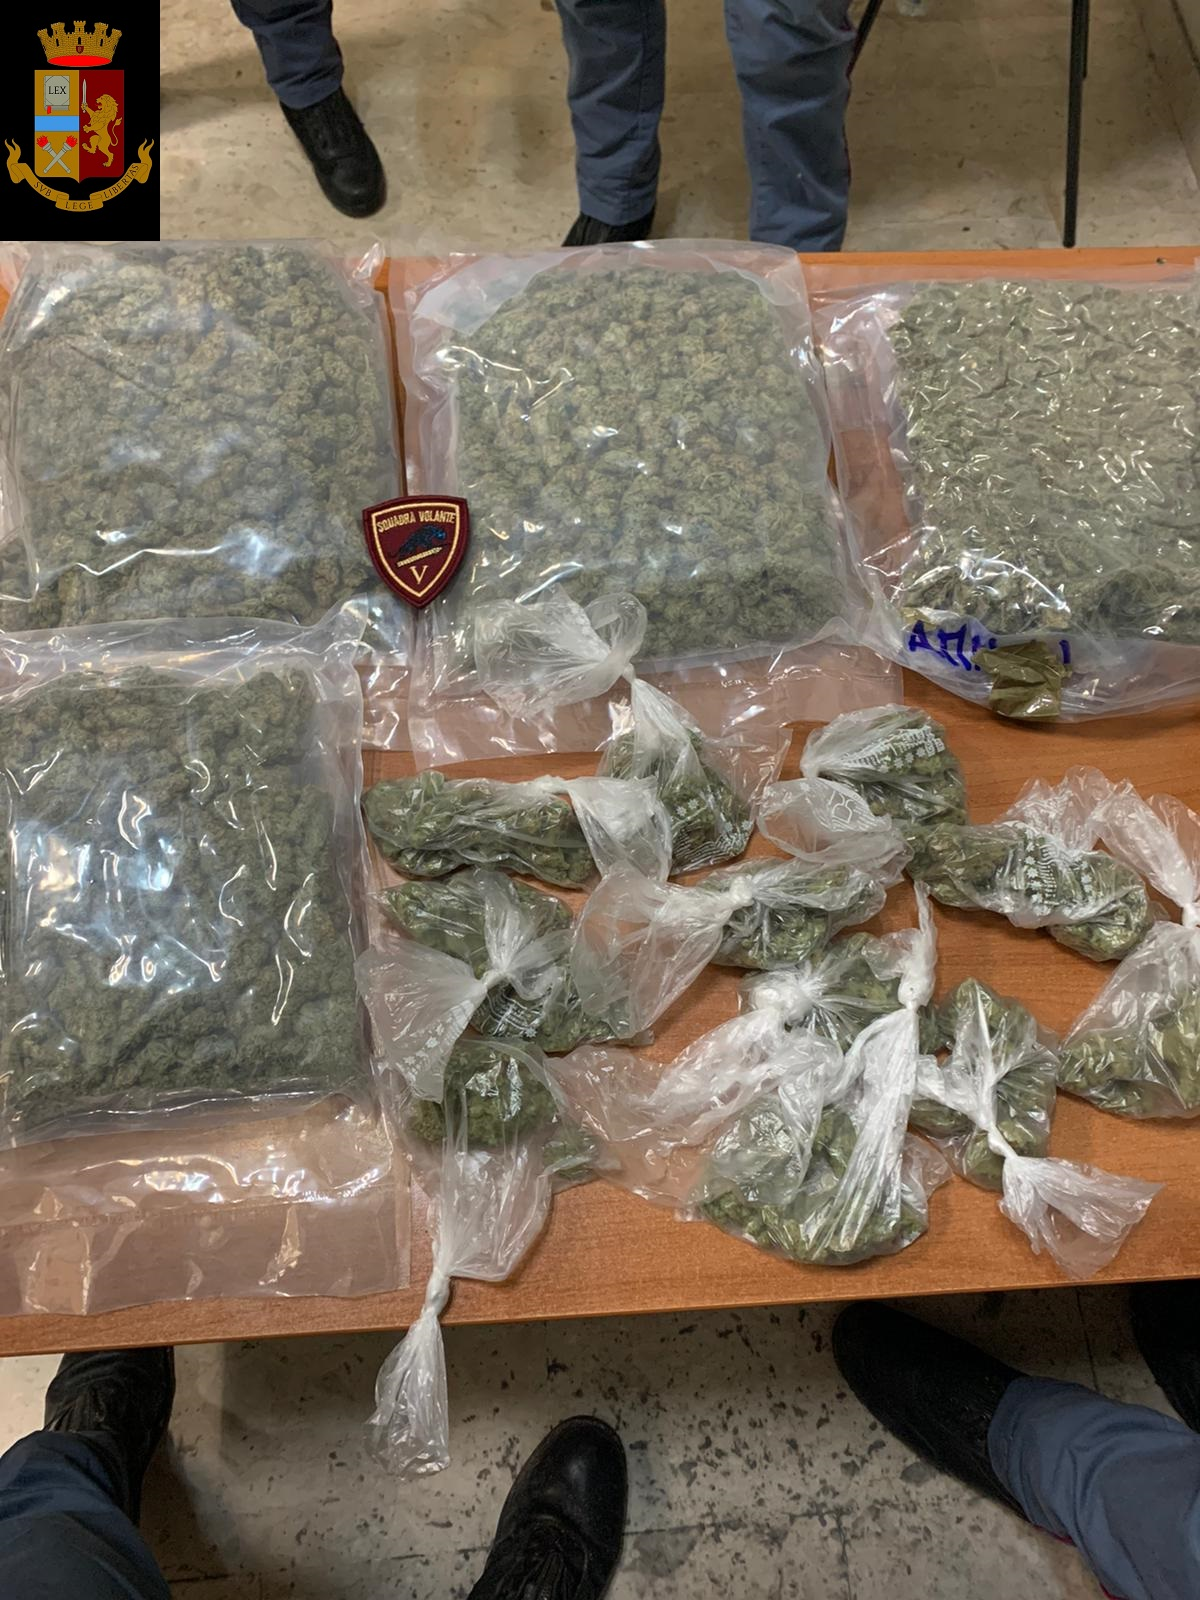 Due buste di plastica con più di 3 chili di marijuana sequestrate a Catania